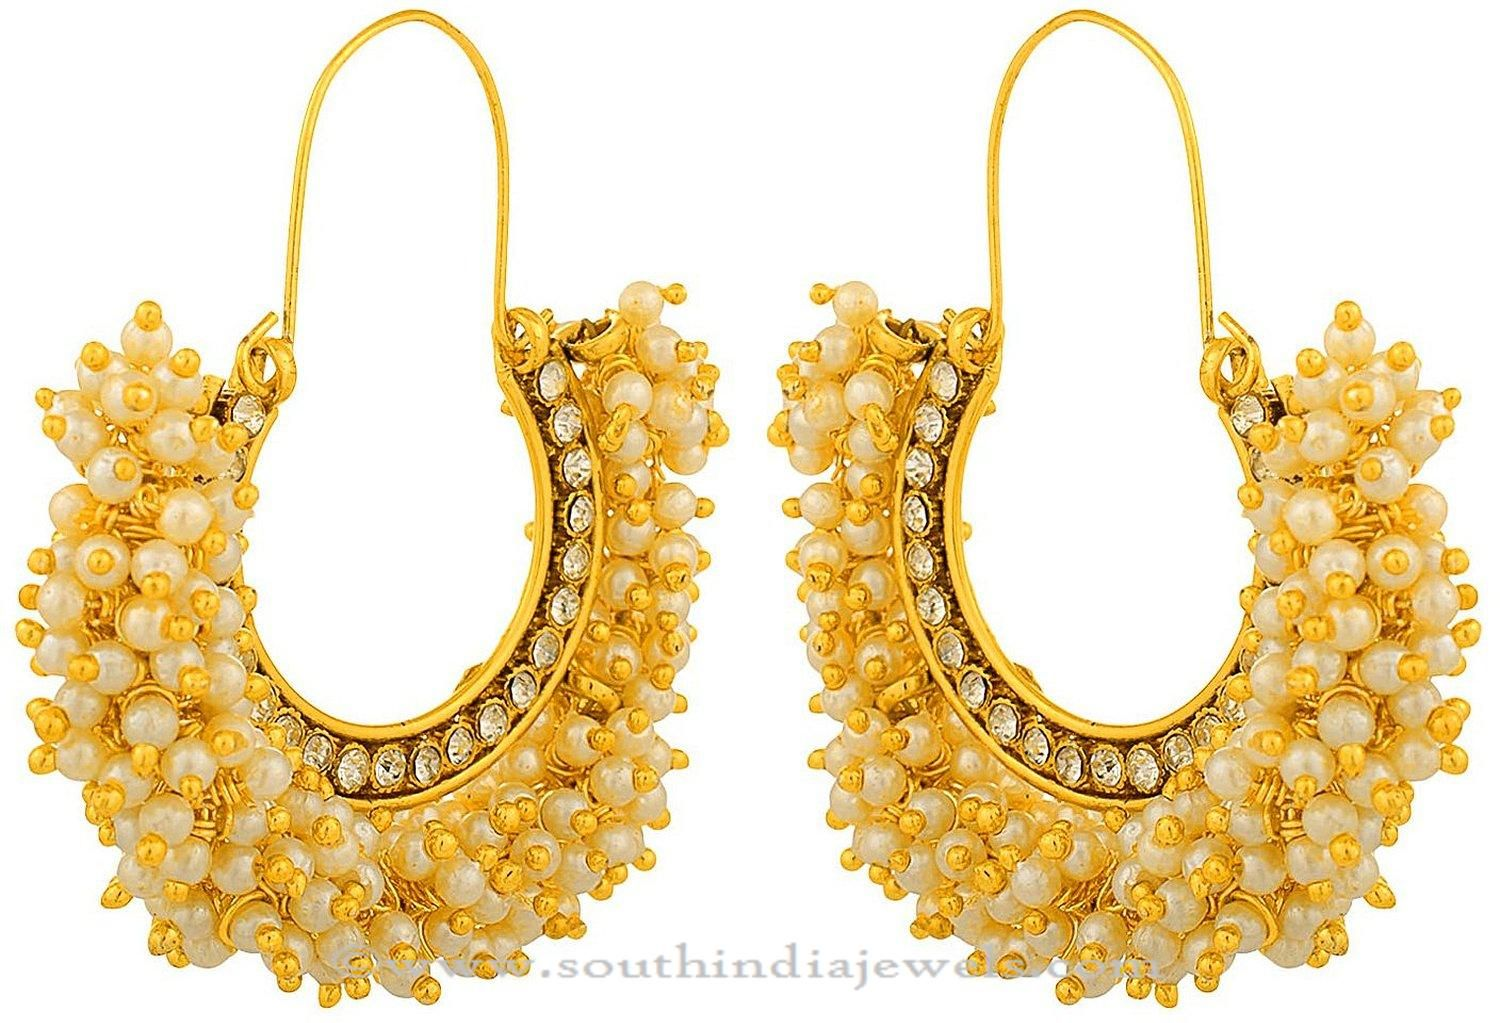 Gold Plated Pearl Hoop Earrings | Pearls, Gold and Indian jewelry